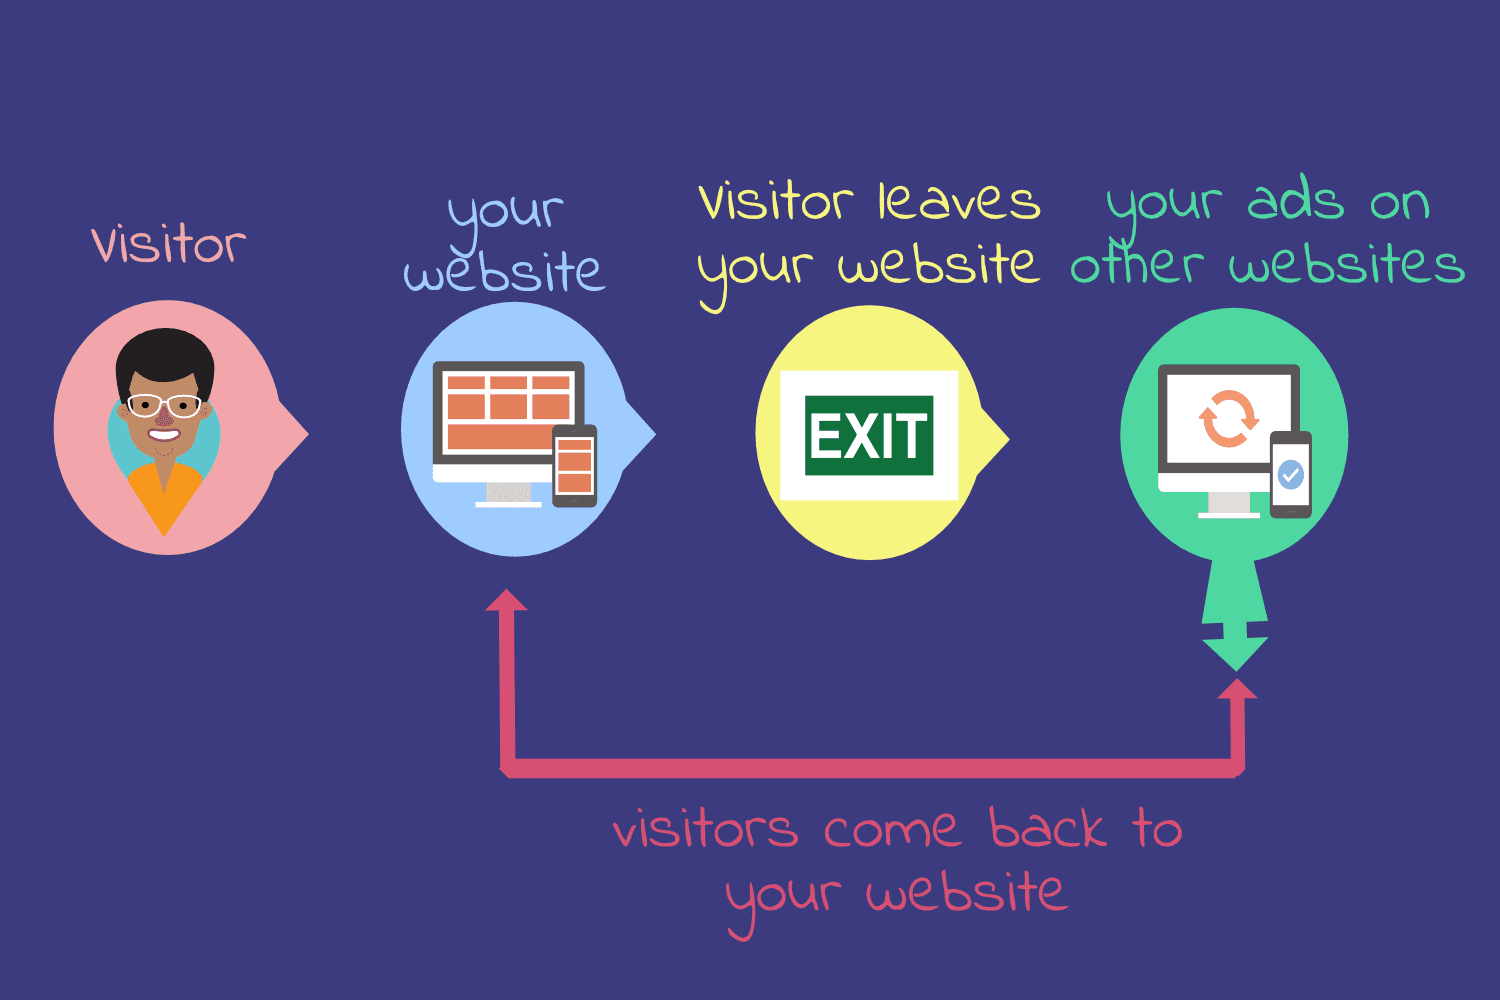 The Benefits of Retargeting: Why should you use Remarketing?